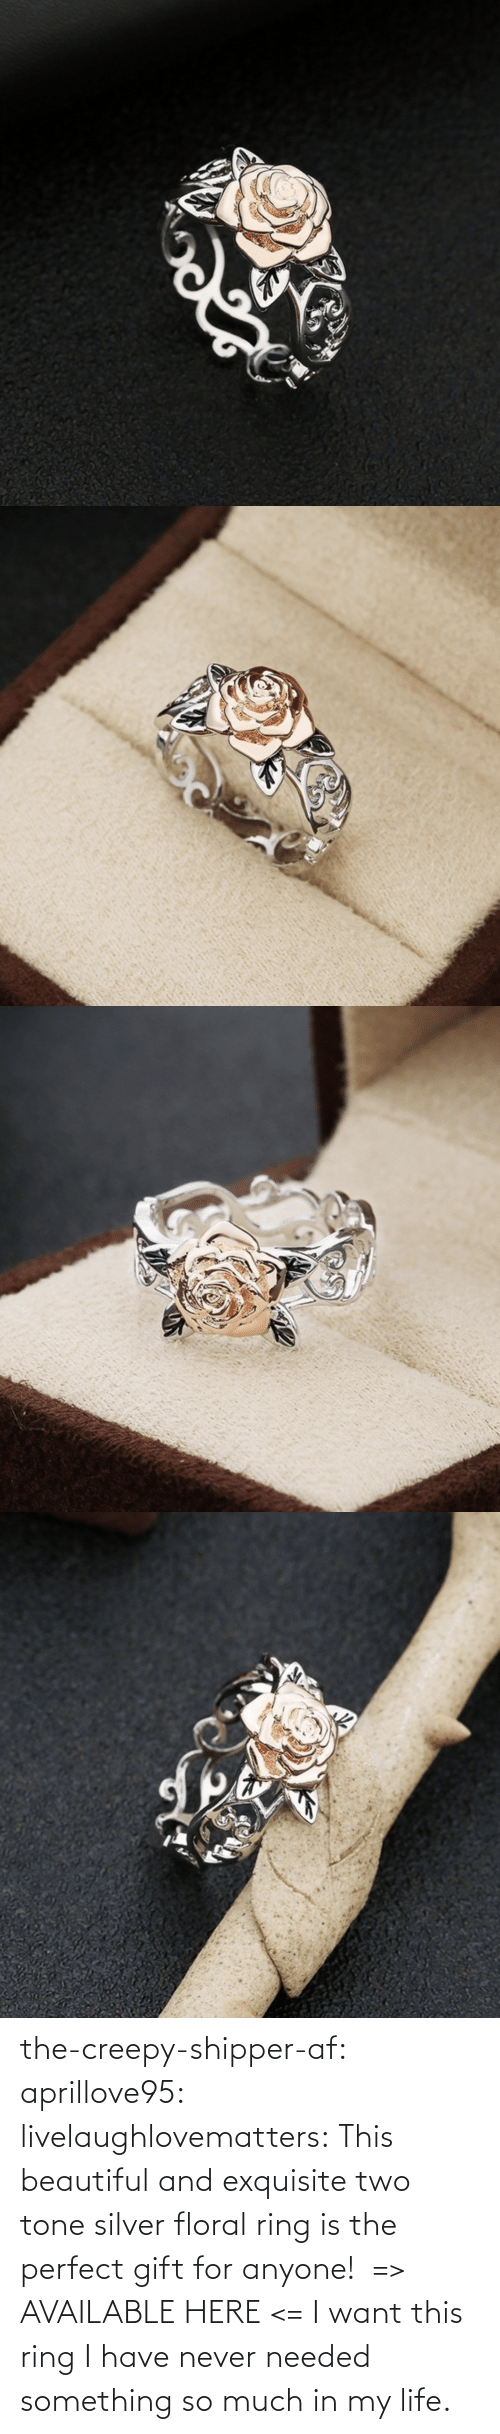 Never: the-creepy-shipper-af: aprillove95:  livelaughlovematters:  This beautiful and exquisite two tone silver floral ring is the perfect gift for anyone! => AVAILABLE HERE <=    I want this ring   I have never needed something so much in my life.